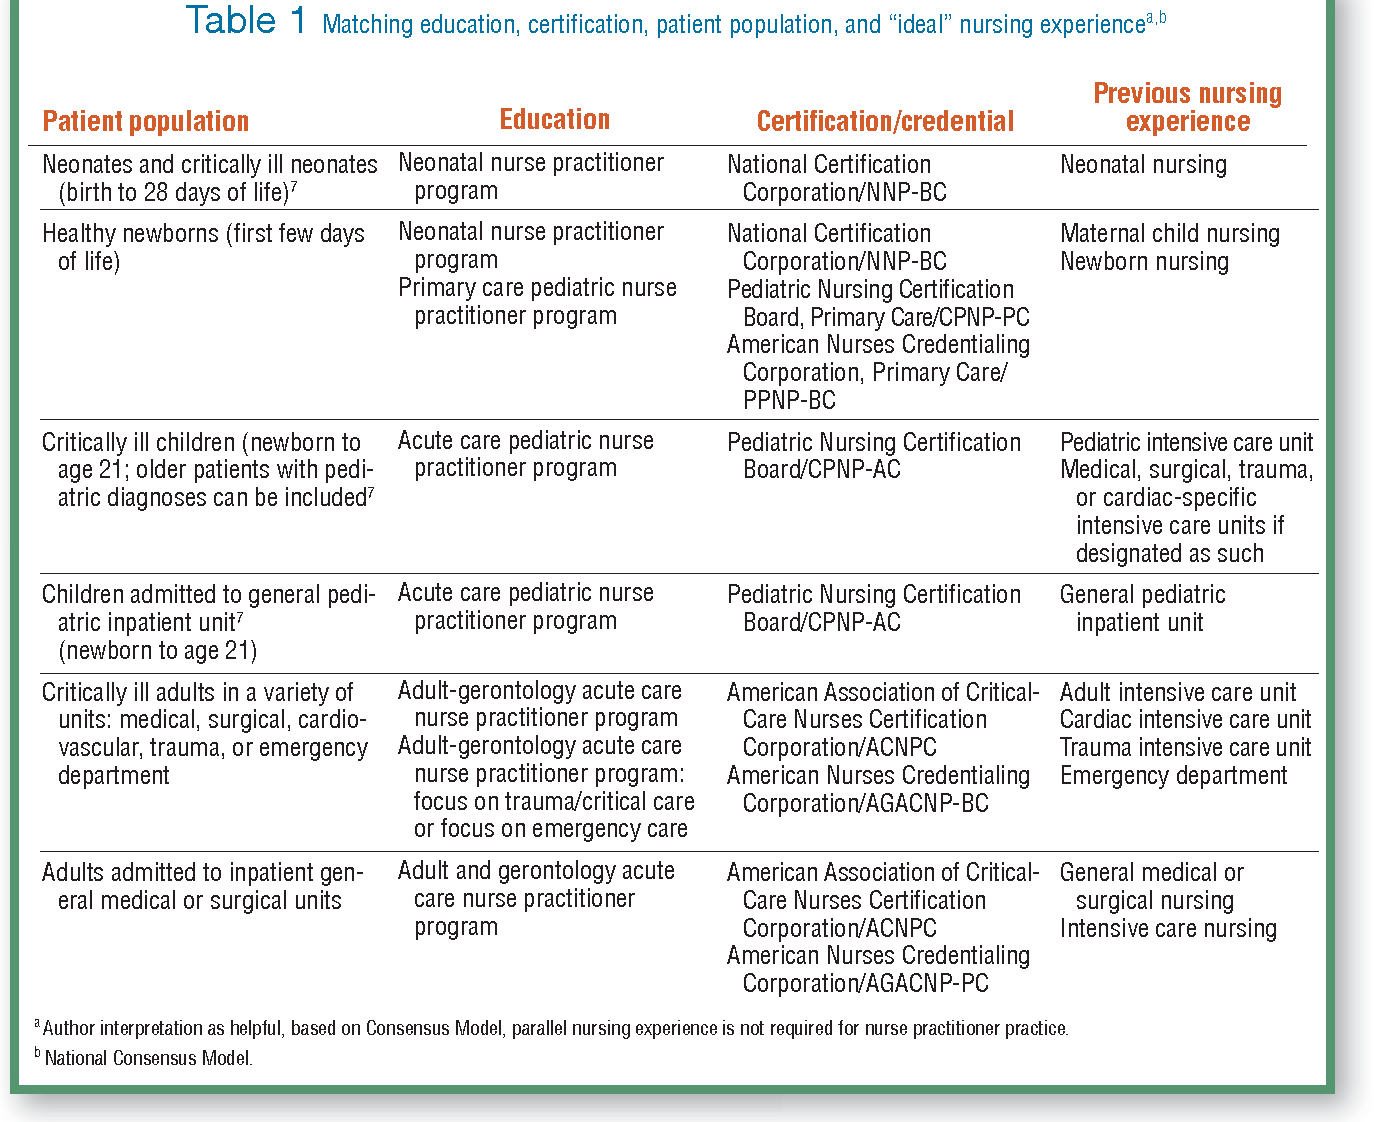 Hiring appropriate providers for different populations